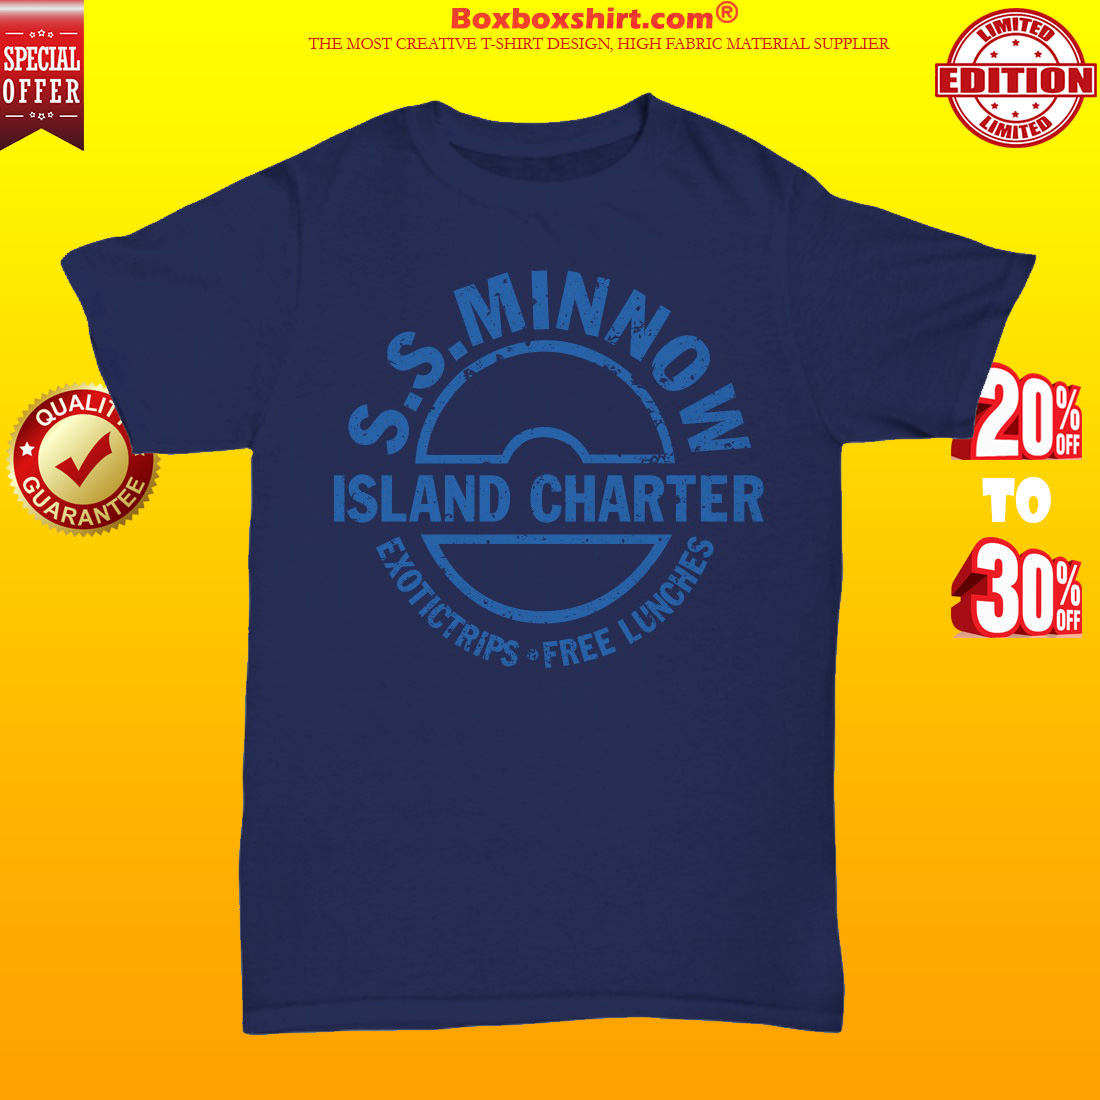 SS minnow island charter exotictrips and free lunches unisex tee shirt